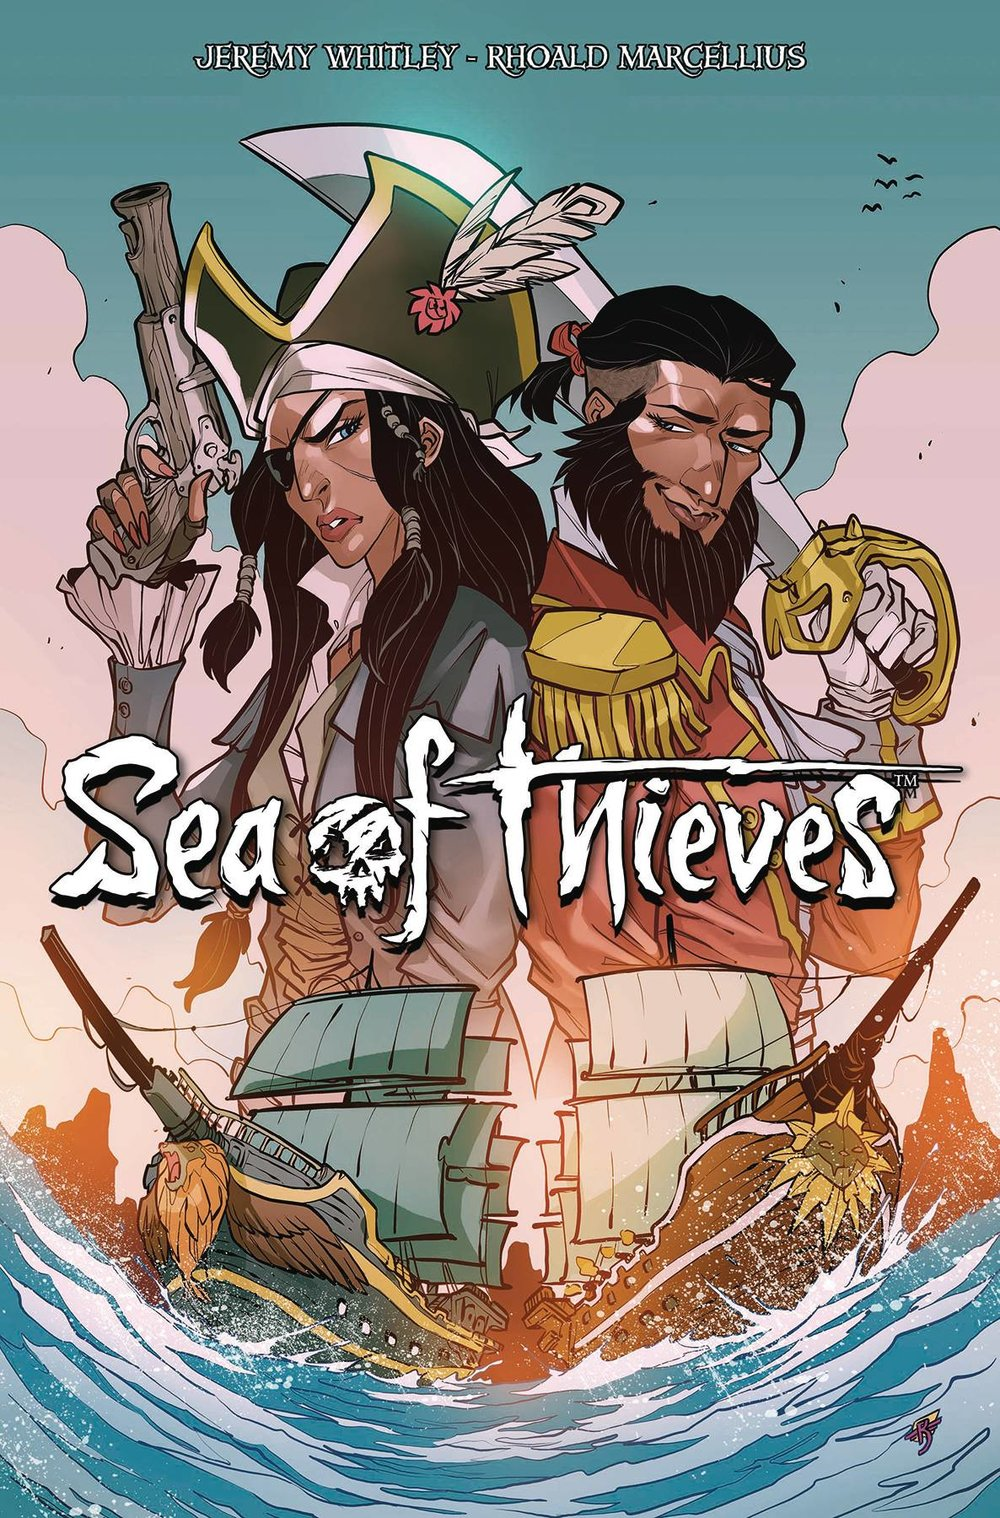 SEA OF THIEVES 2 of 4 CVR A MARCELLIUS.jpg